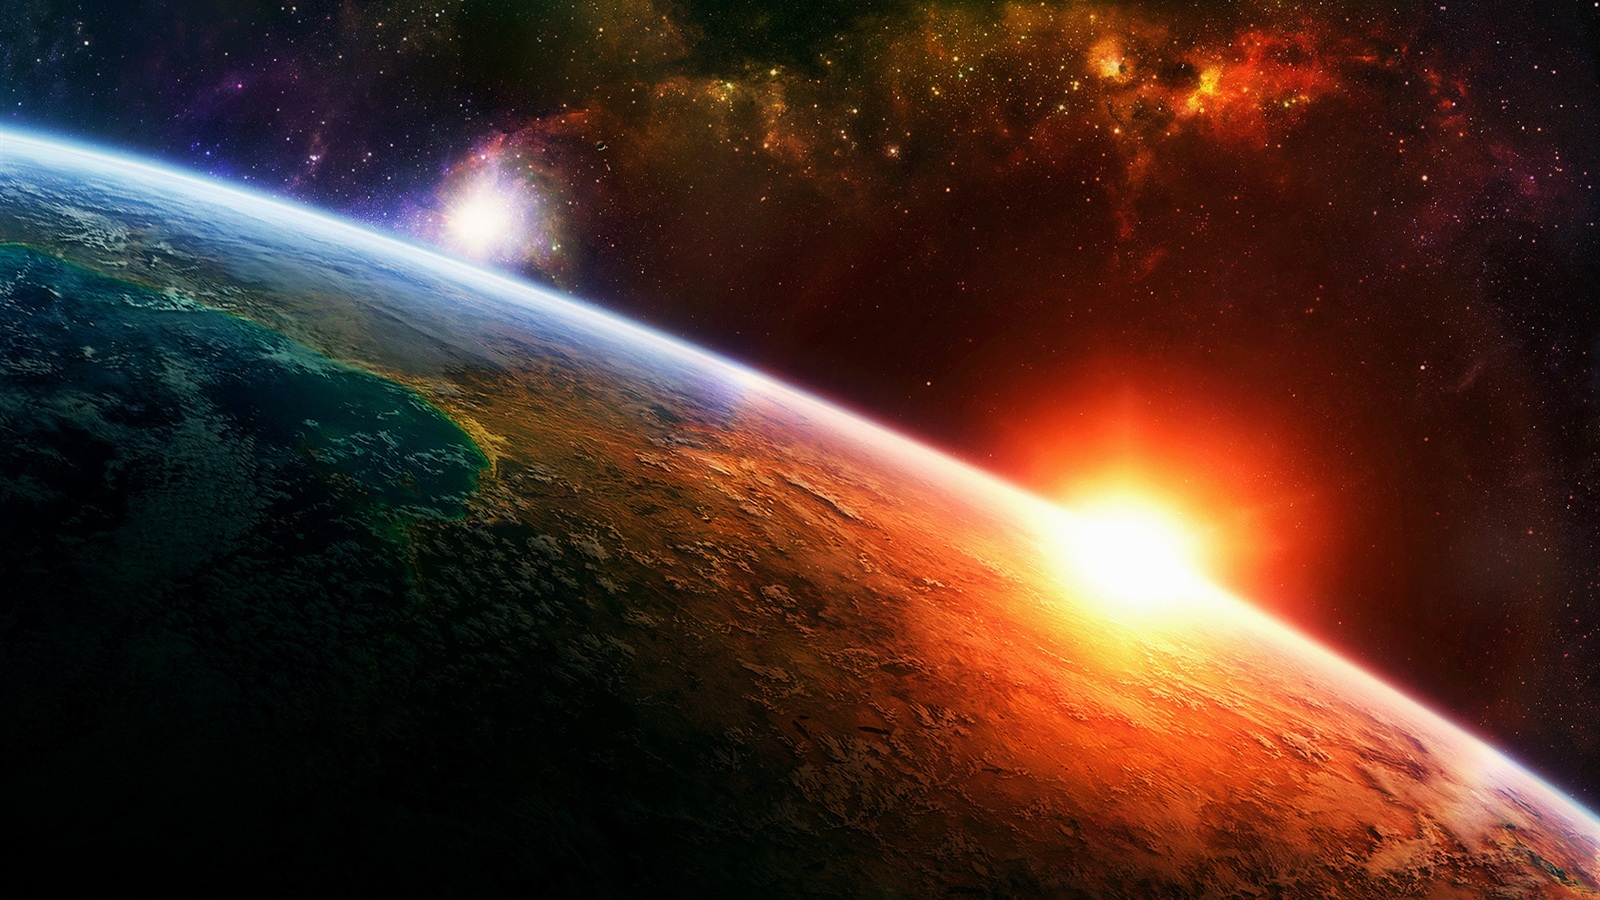 Sunrise Earth In Space Wallpaper 1600x900 Resolution